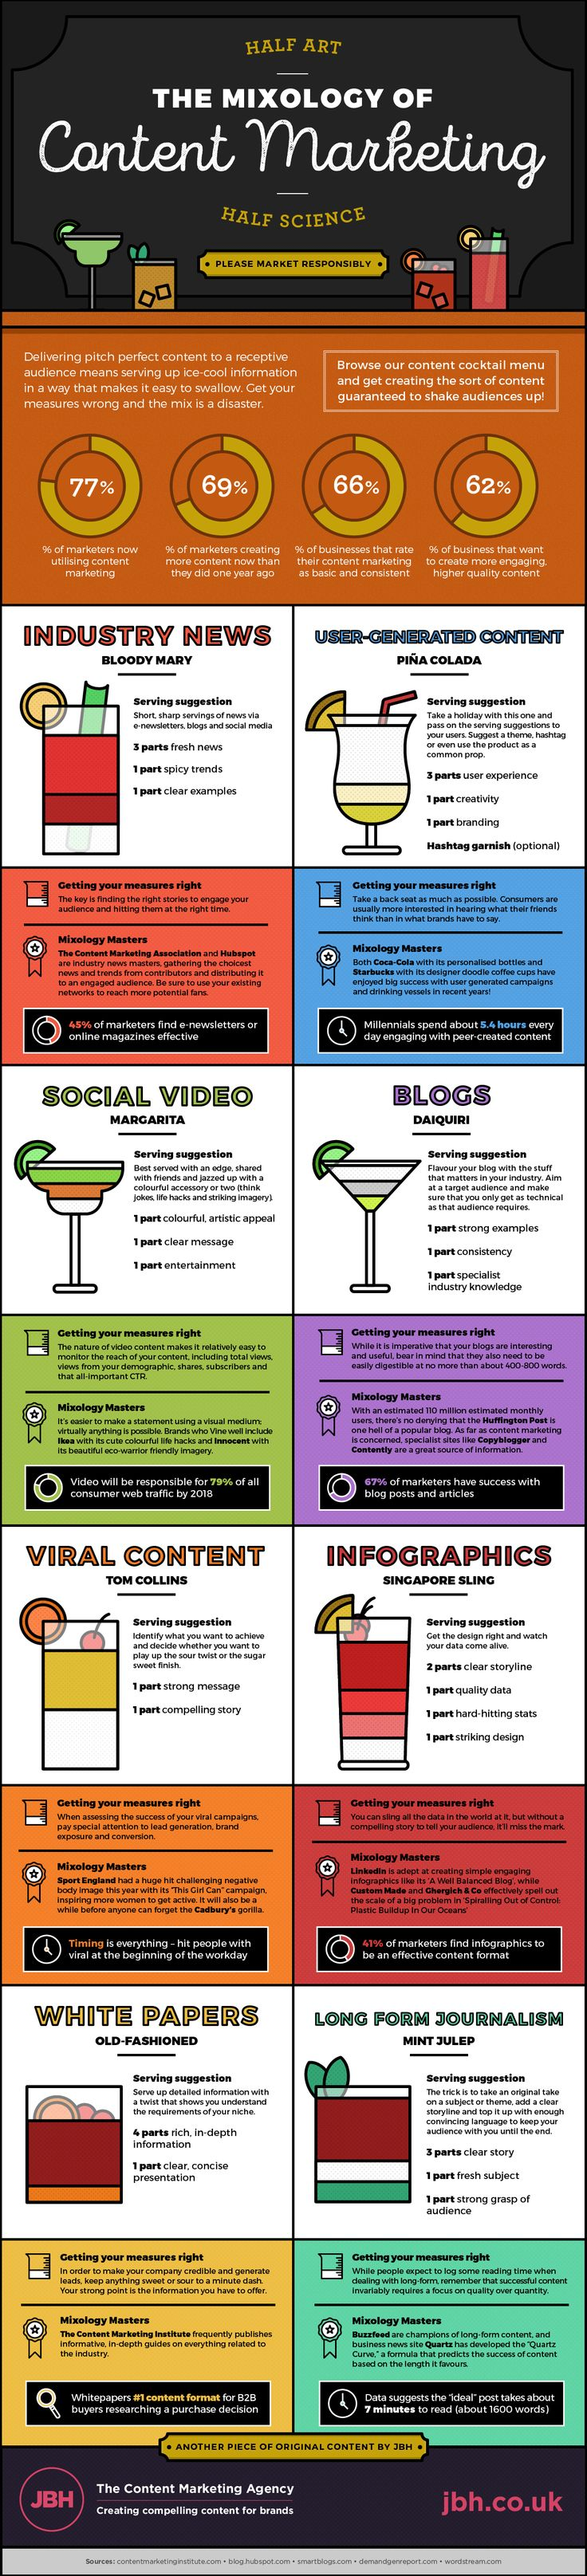 The Mixology of Content Marketing [Infographic]   Social Media Today Learn more about us by clicking on pin.